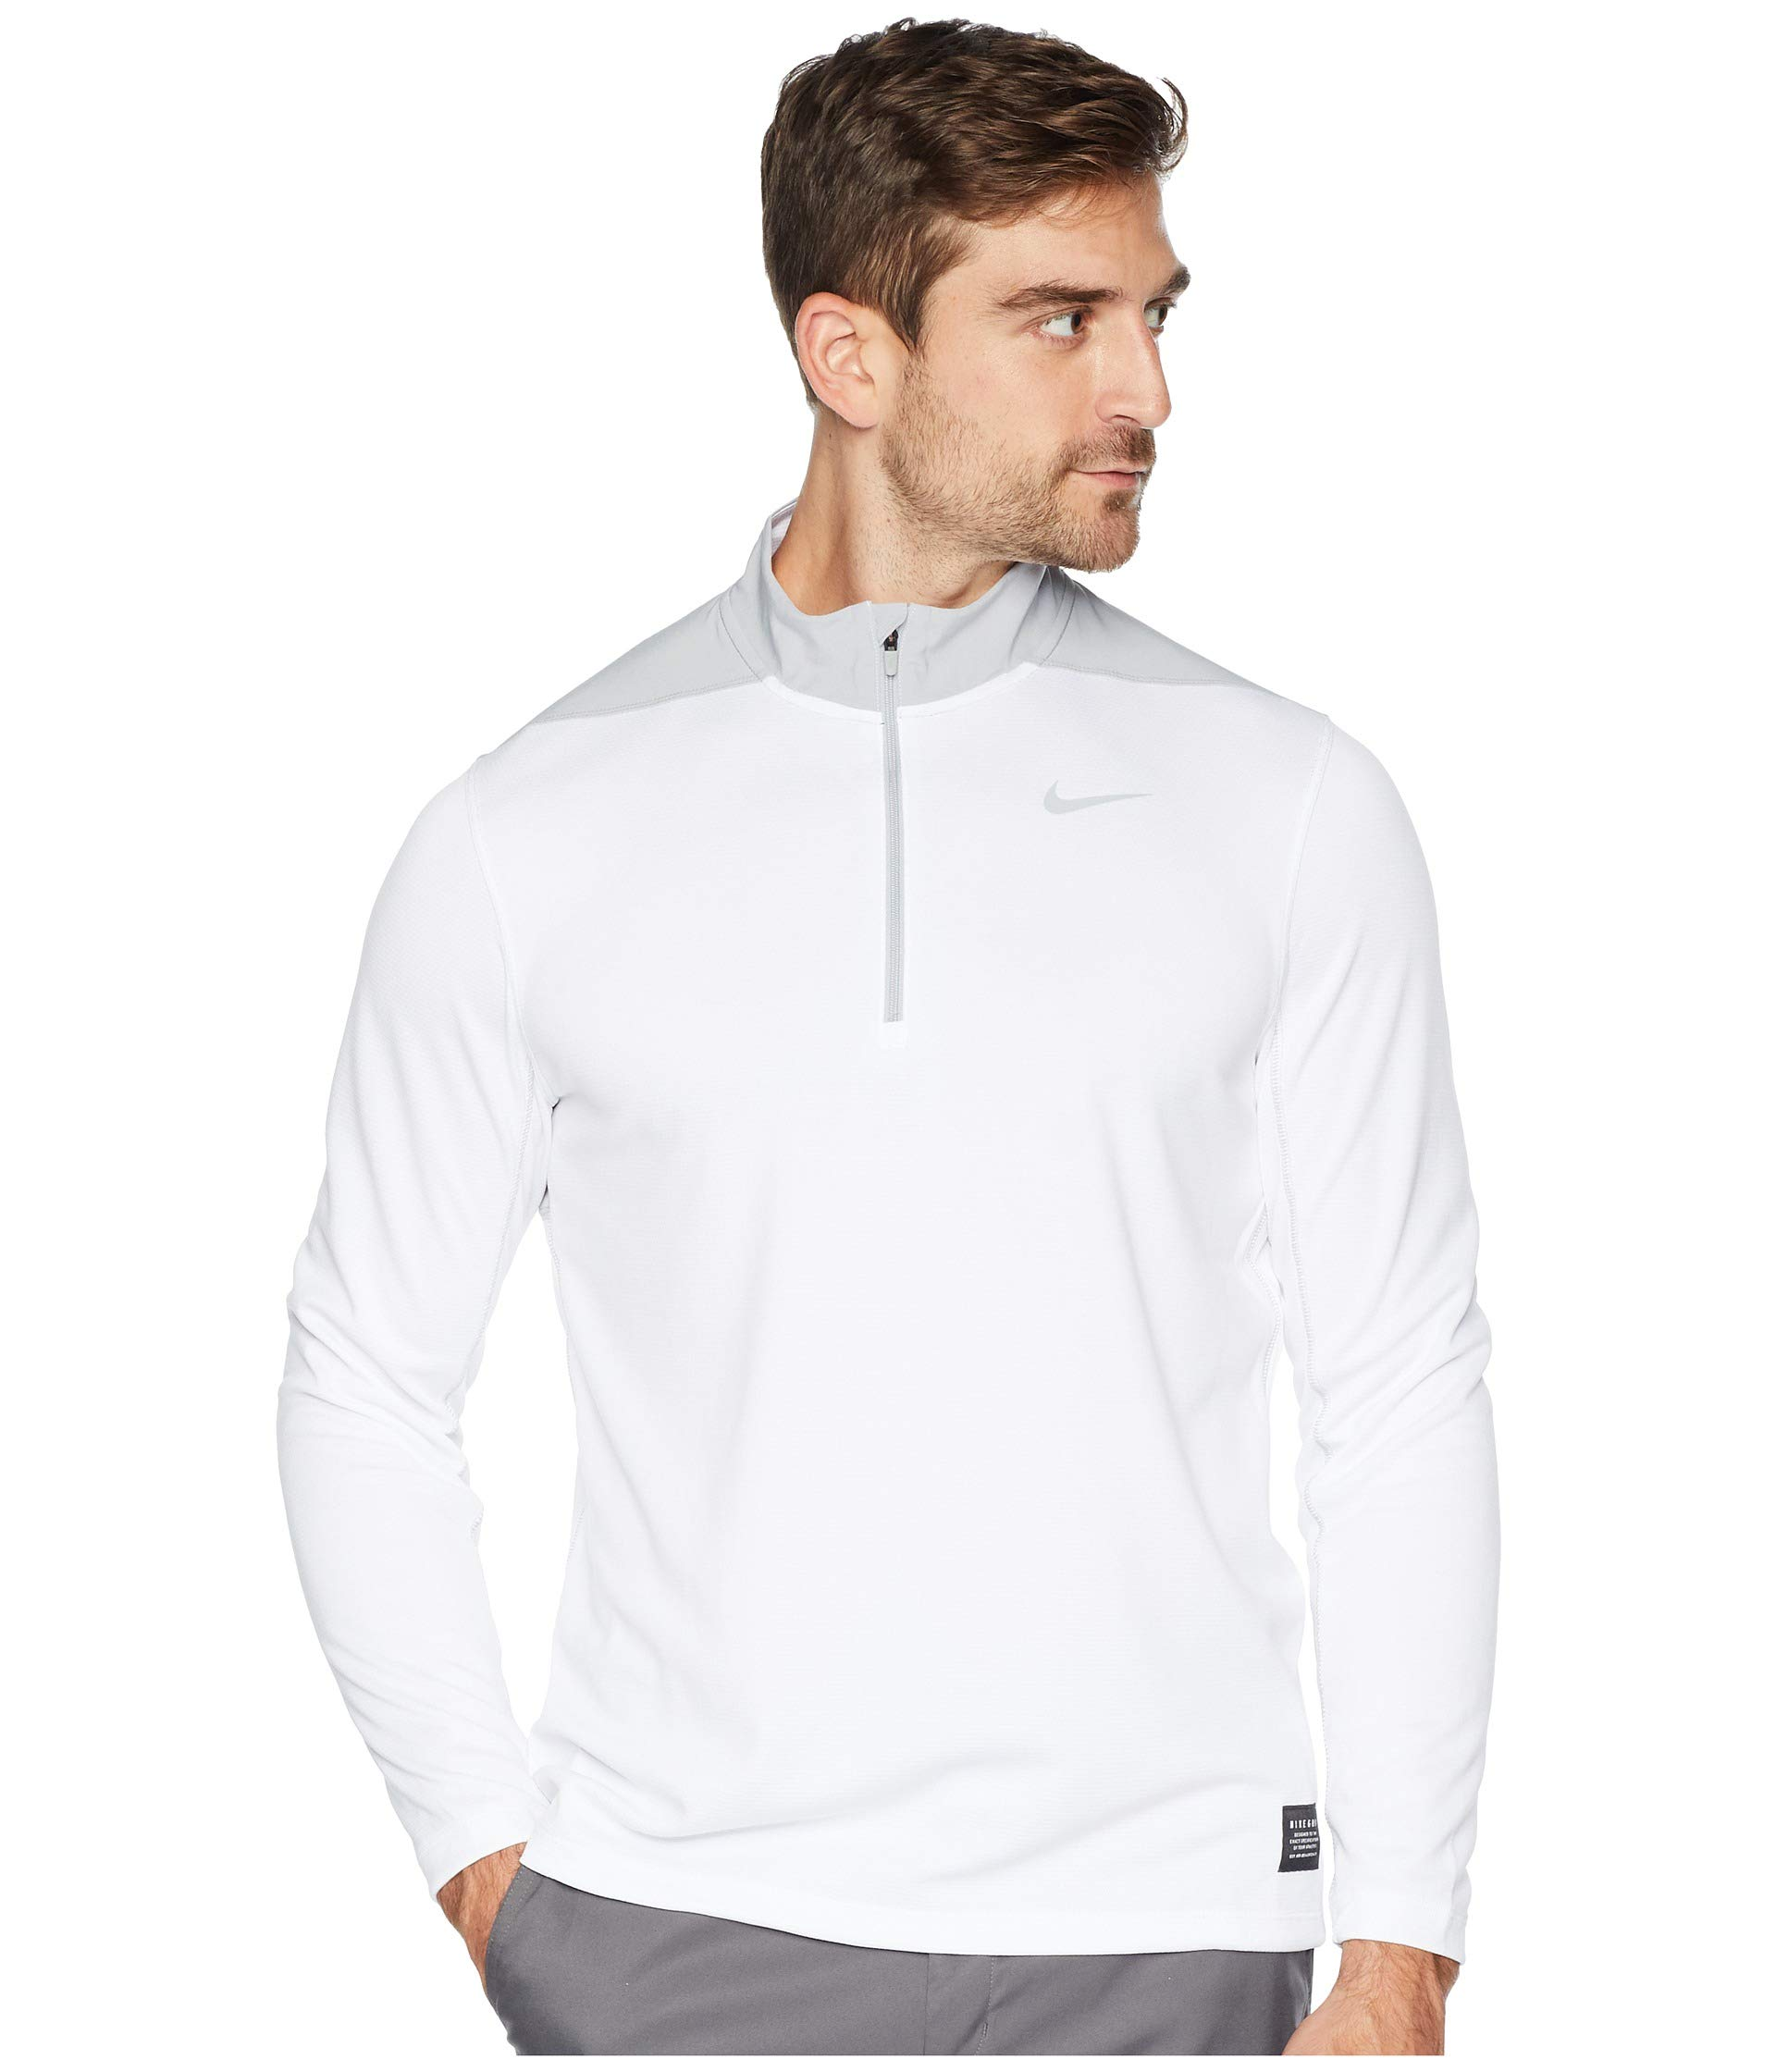 Nike Men's Dry Top Half Zip core Golf Top (White/Wolf Grey, Large) by Nike